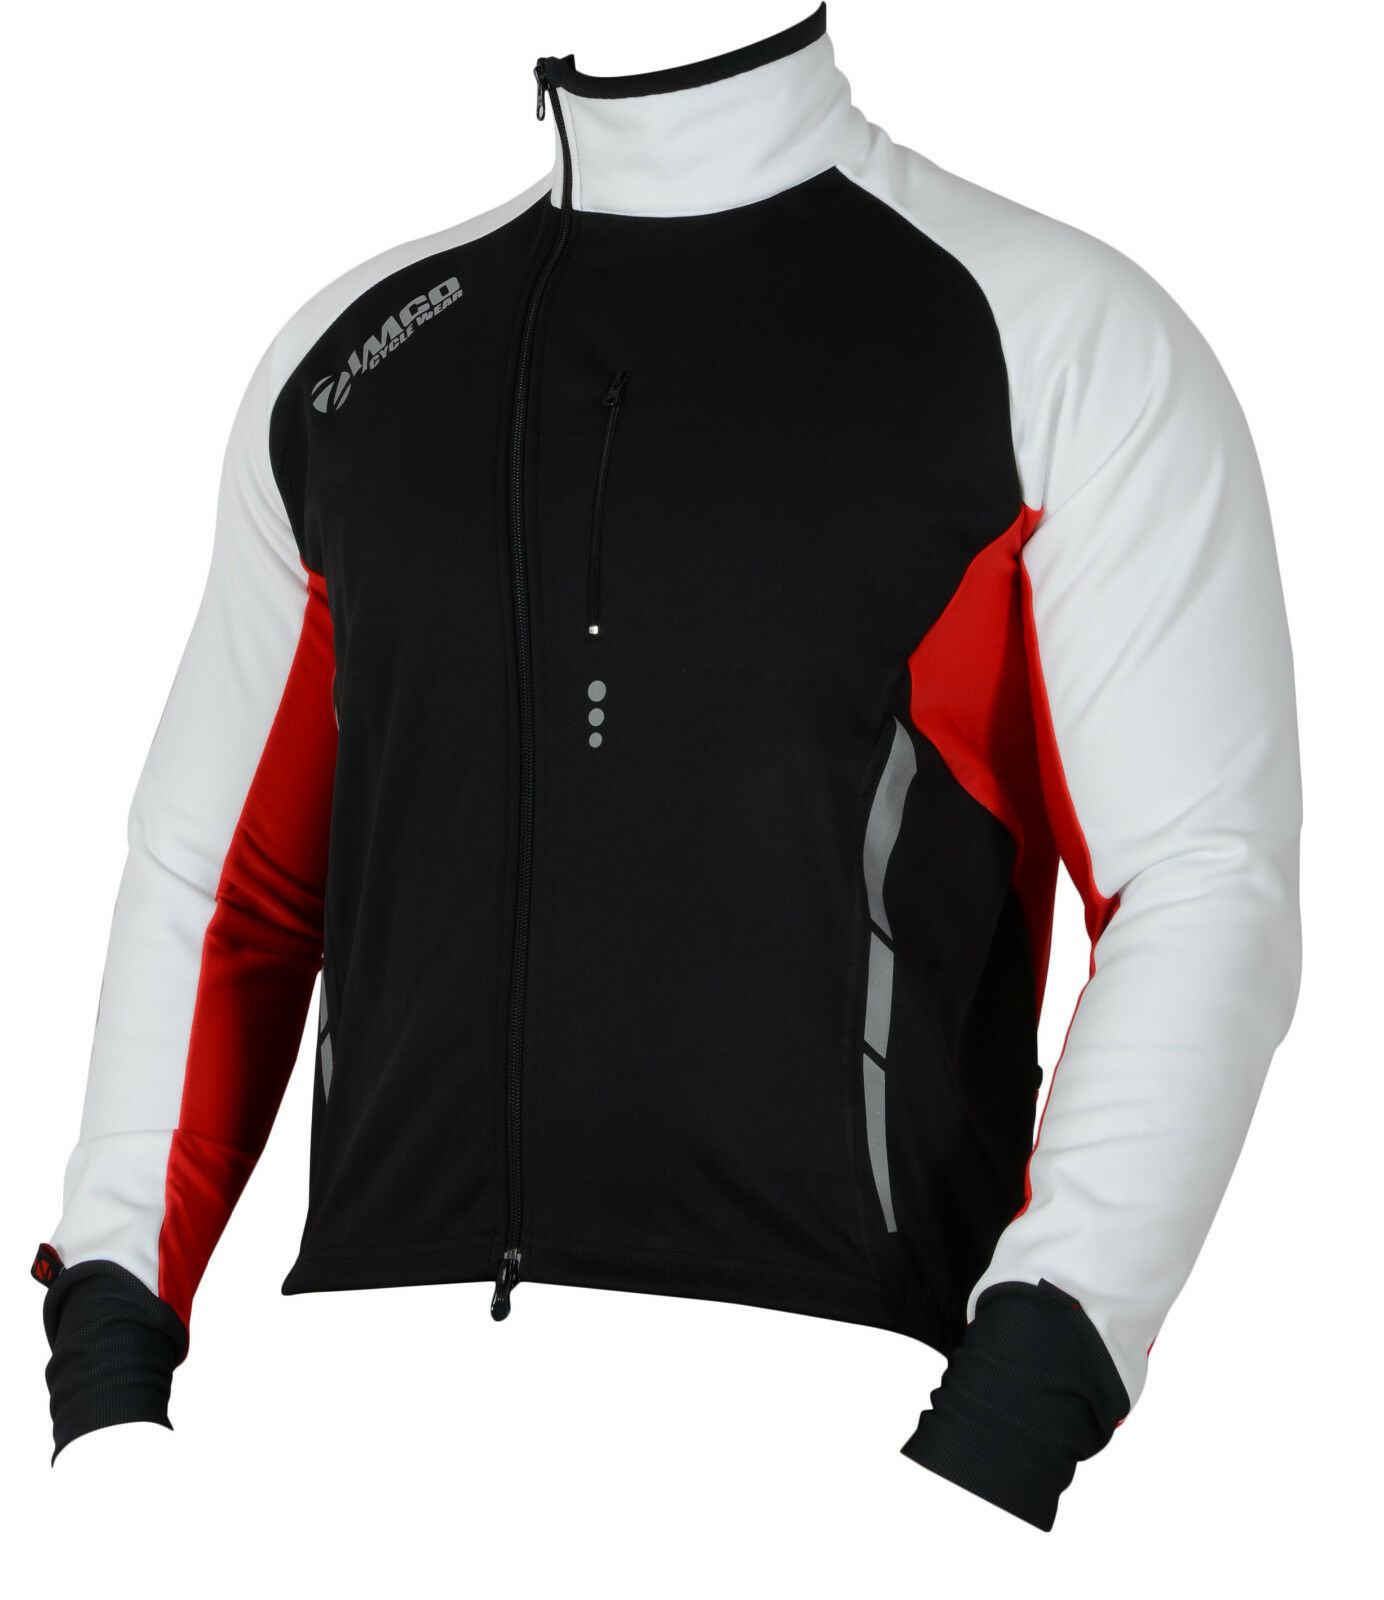 Small, Black-White-Red Zimco Pro Men Winter Cycling Jackets High Viz Bicycle Jersey Windproof Thermal Insulated Jacket